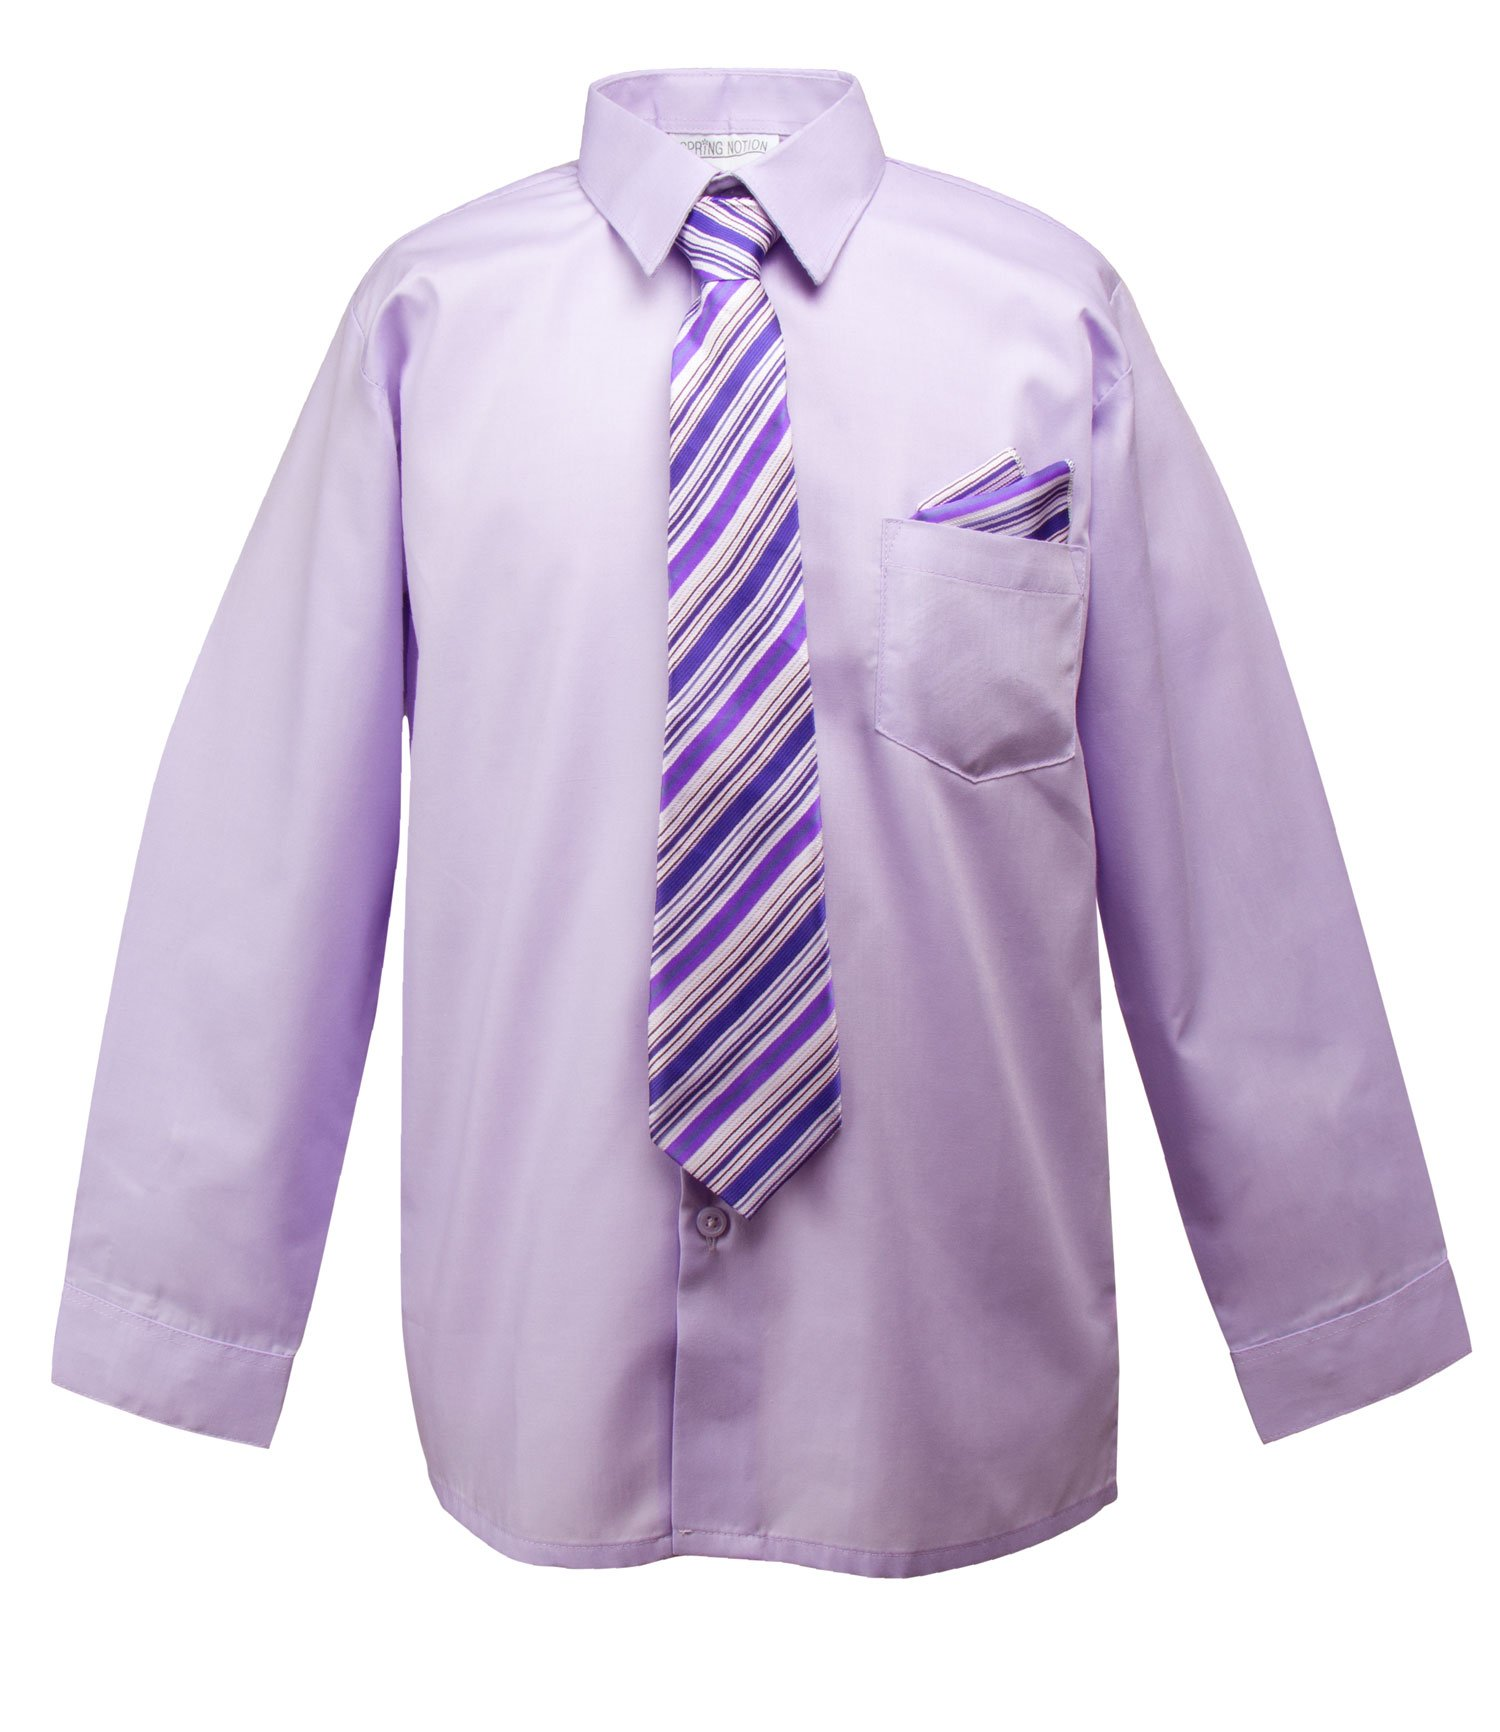 Spring Notion Little Boys' Dress Shirt with Tie and Handkerchief Set 4T Lilac